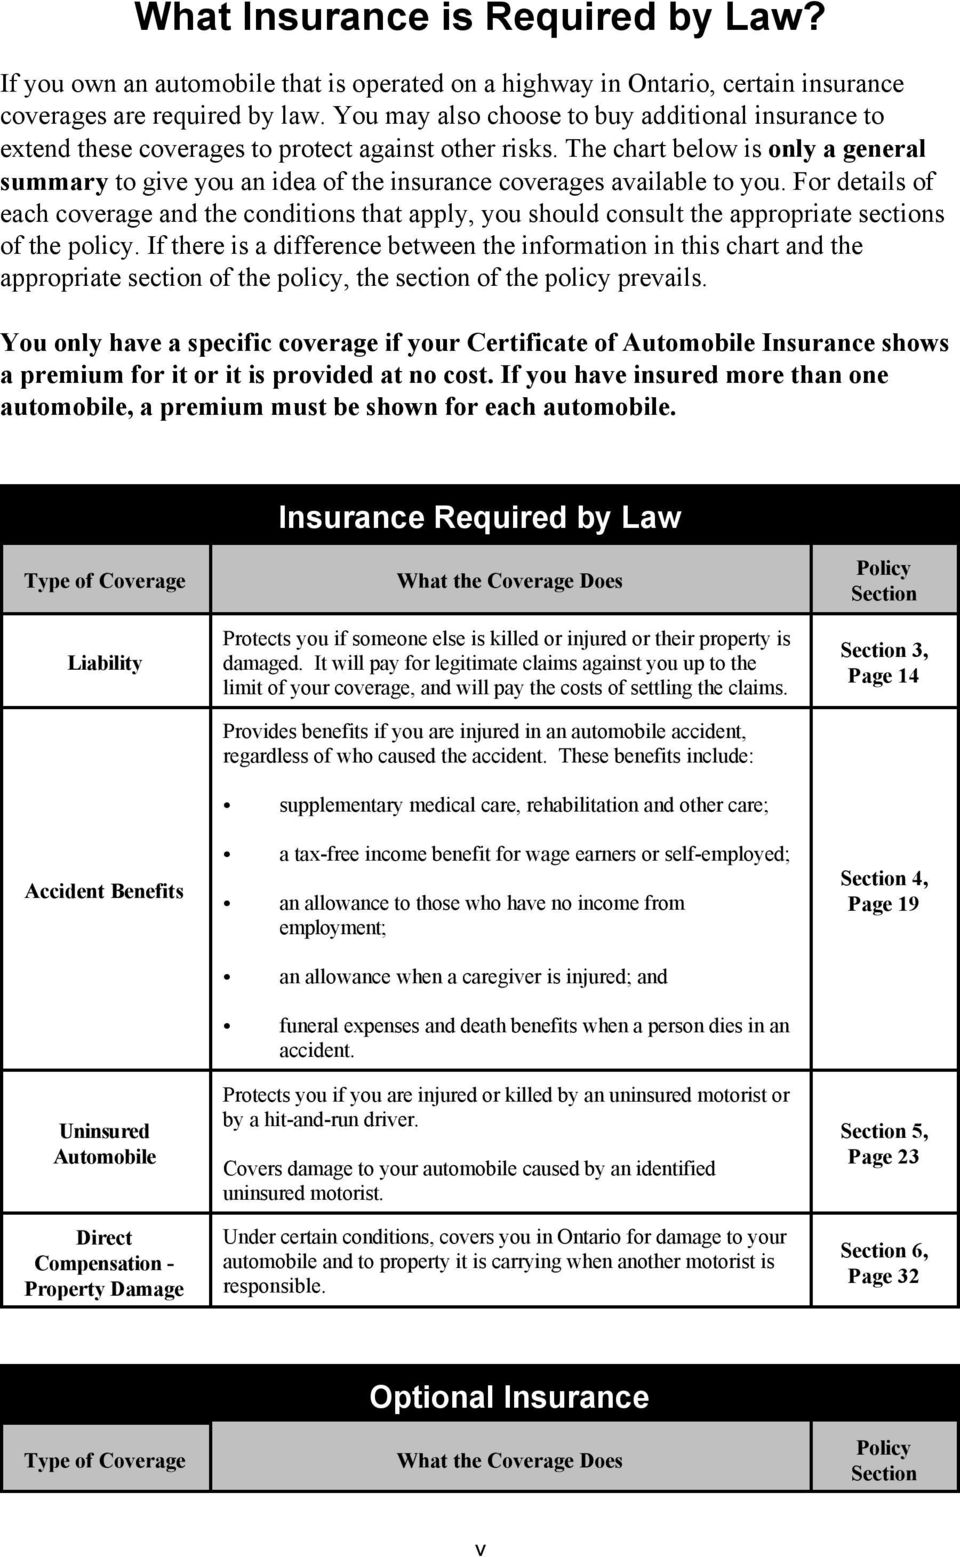 The chart below is only a general summary to give you an idea of the insurance coverages available to you.